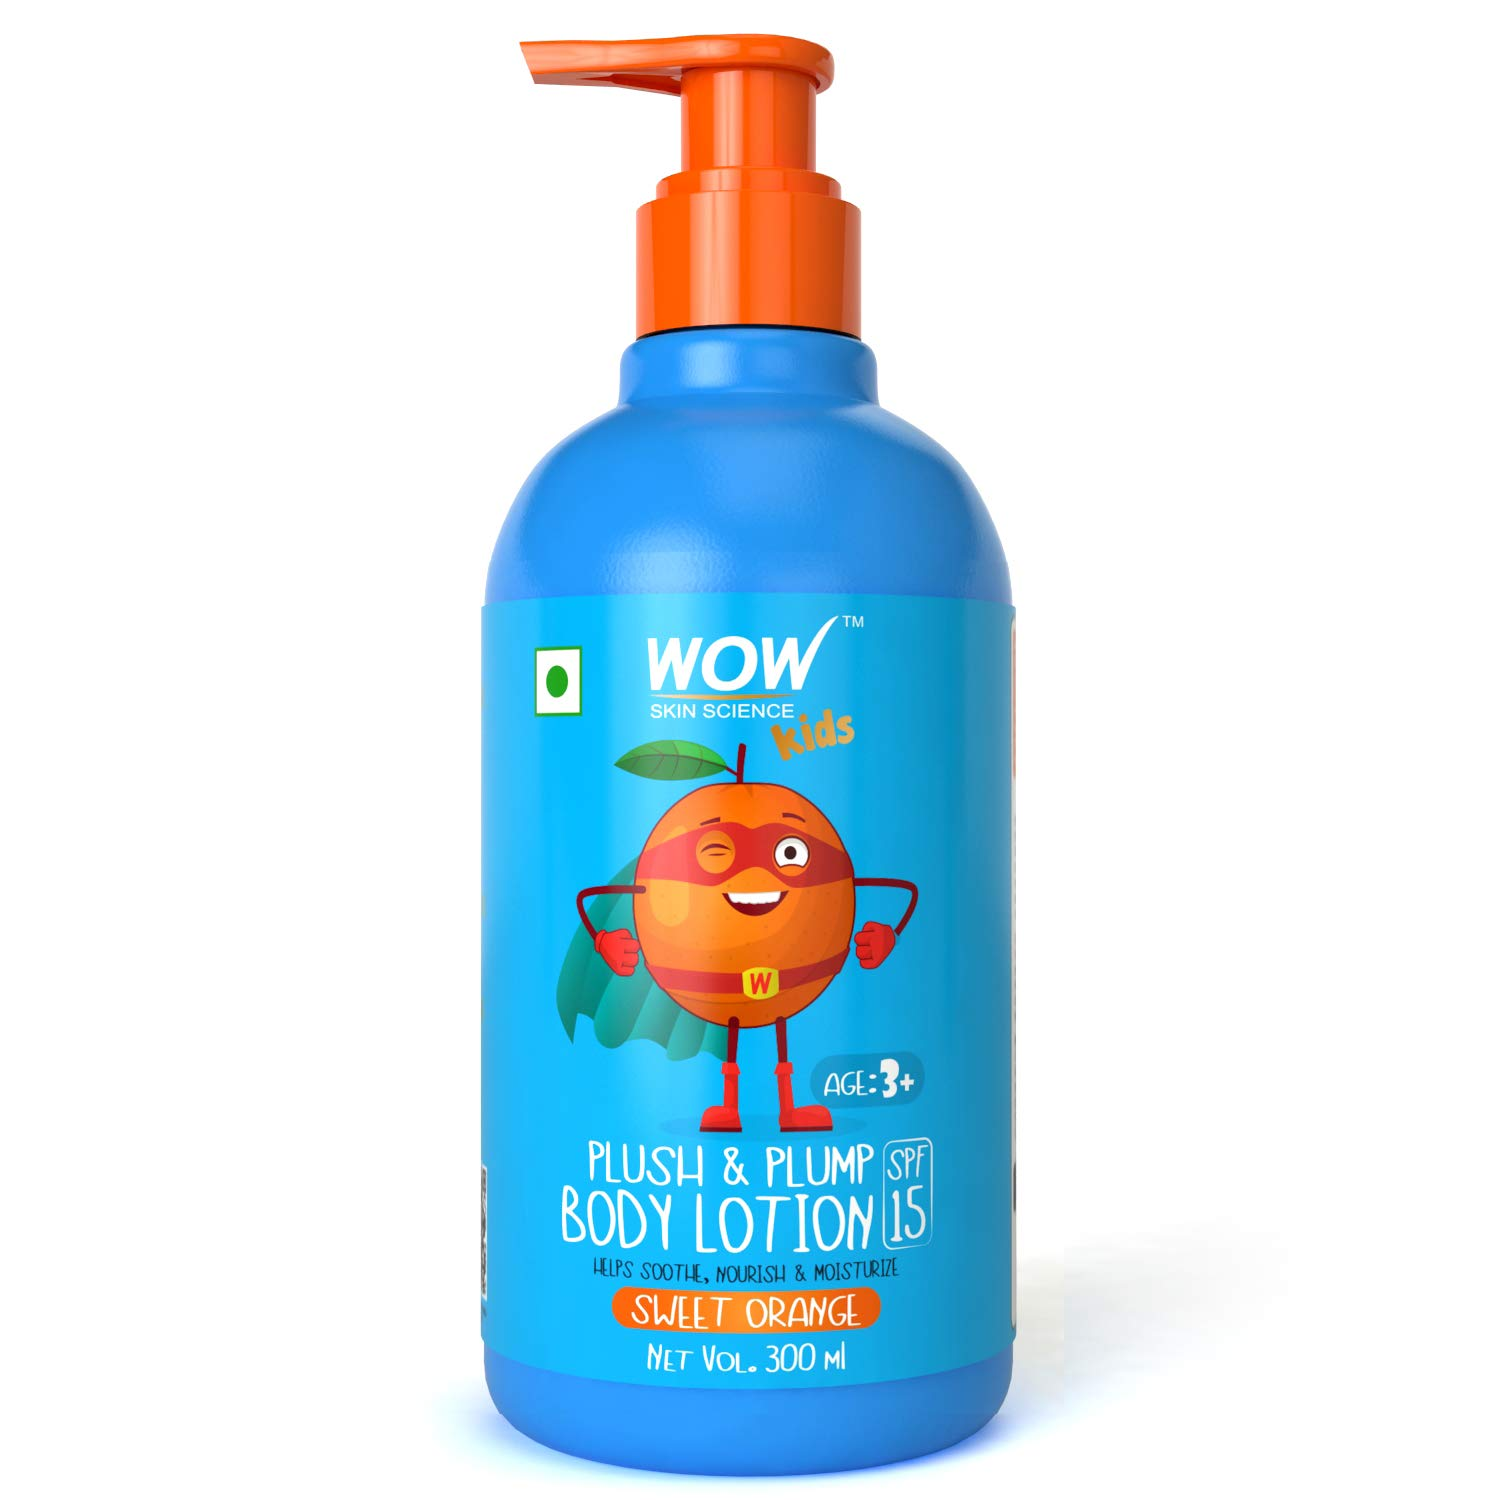 WOW Skin Science Kids Plush & Plump Body Lotion - Sweet Orange - SPF 15 - No Parabens, Mineral Oil, Silicones & Color, 300 ml